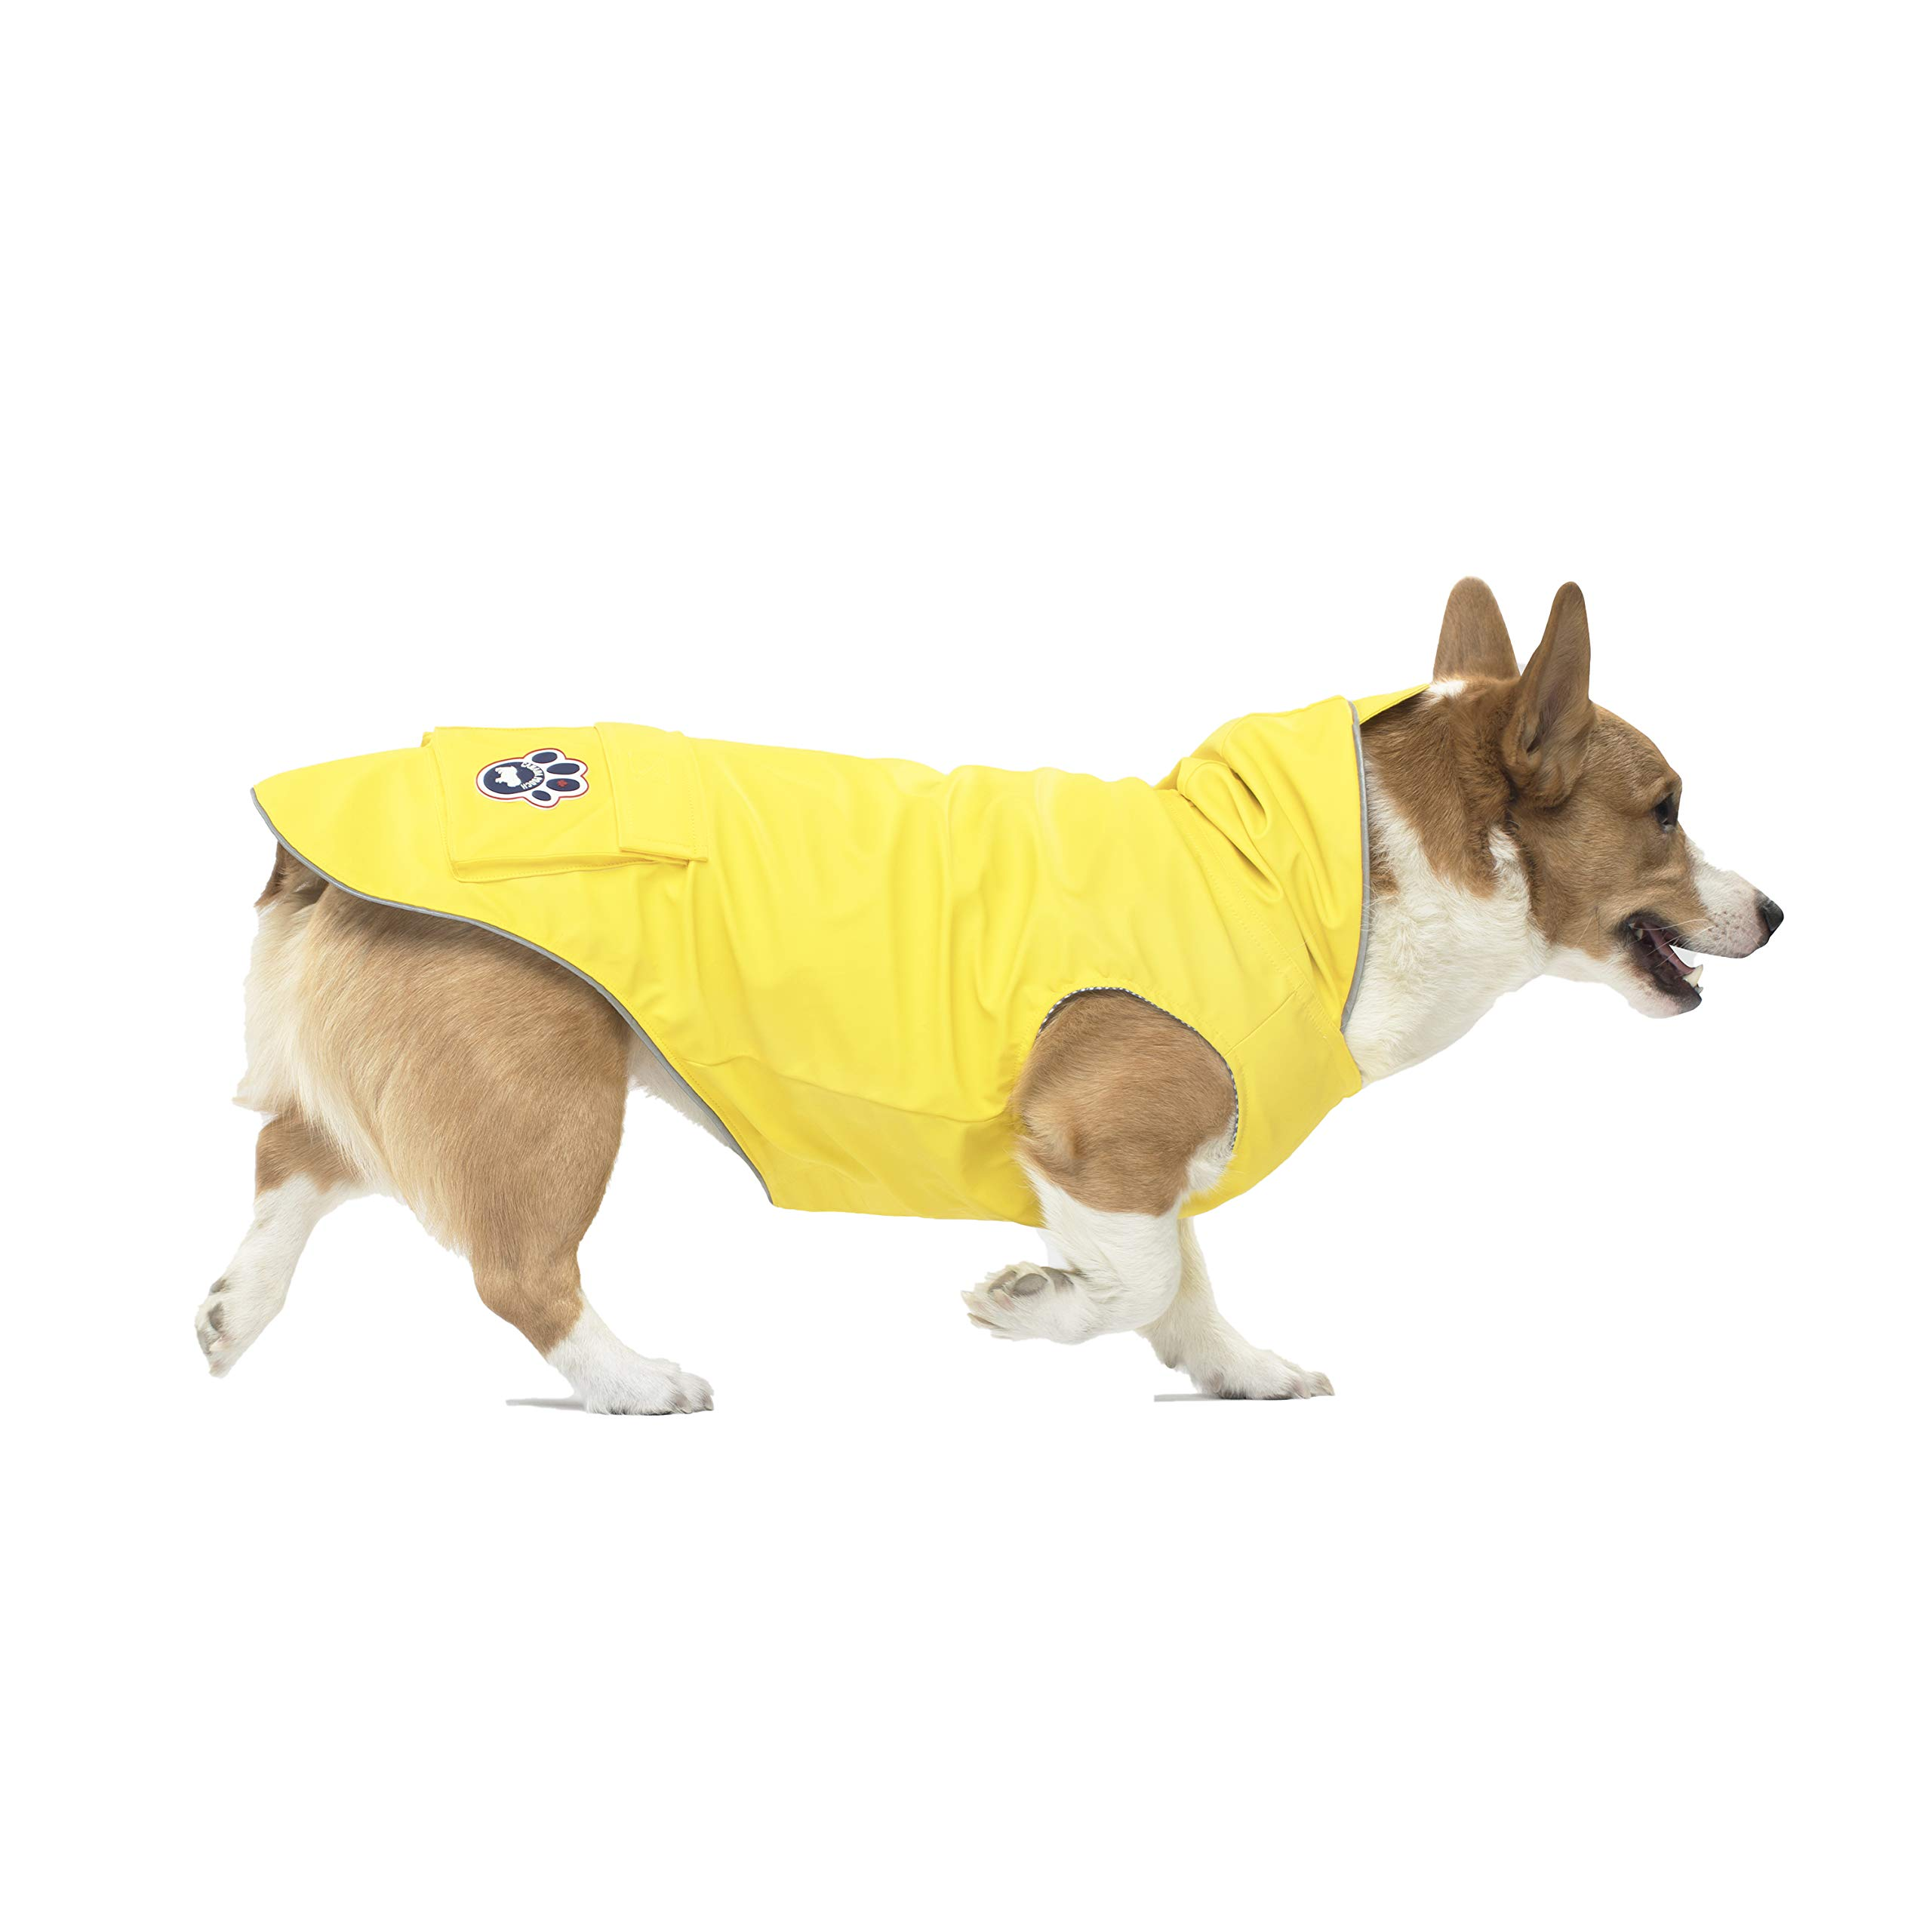 Canada Pooch Torrential Tracker, Yellow, Size 20